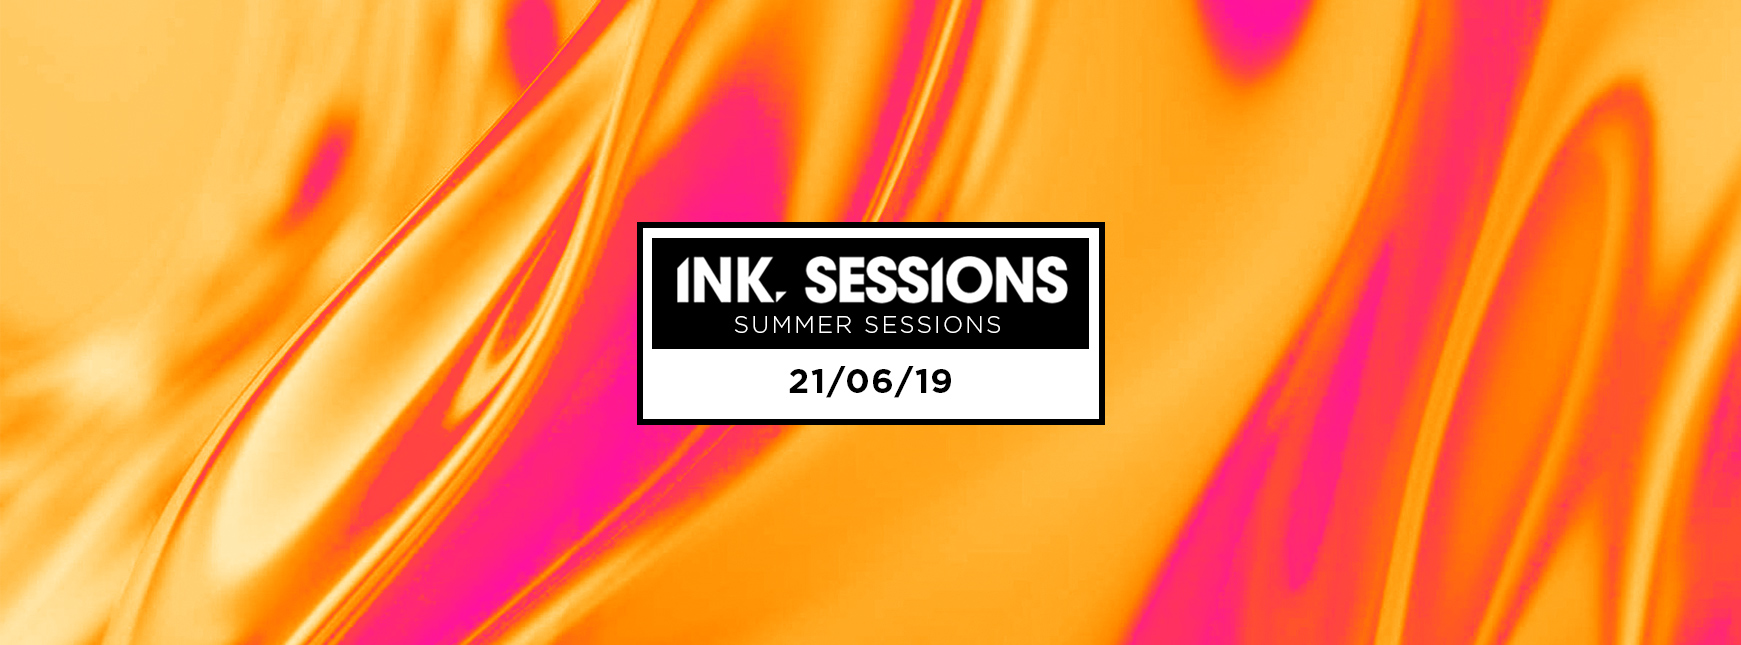 Ink Sessions – 21/06/19